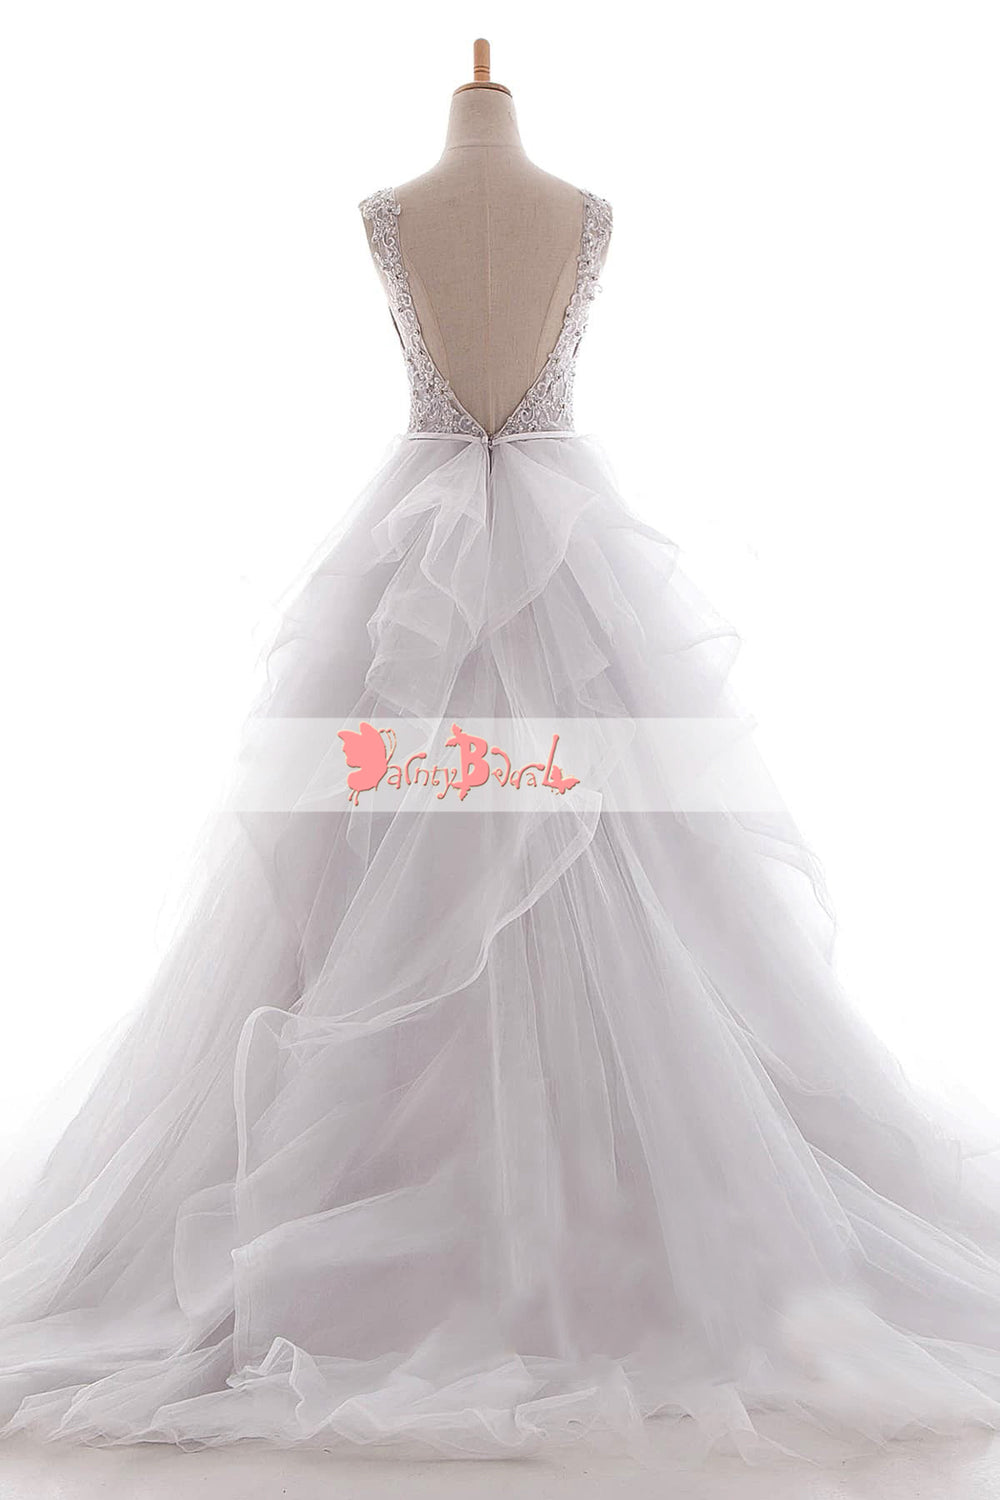 97ef9a9d5c7 White Beaded Lace Top Ruffles Ball Gown Princess Wedding Dresses